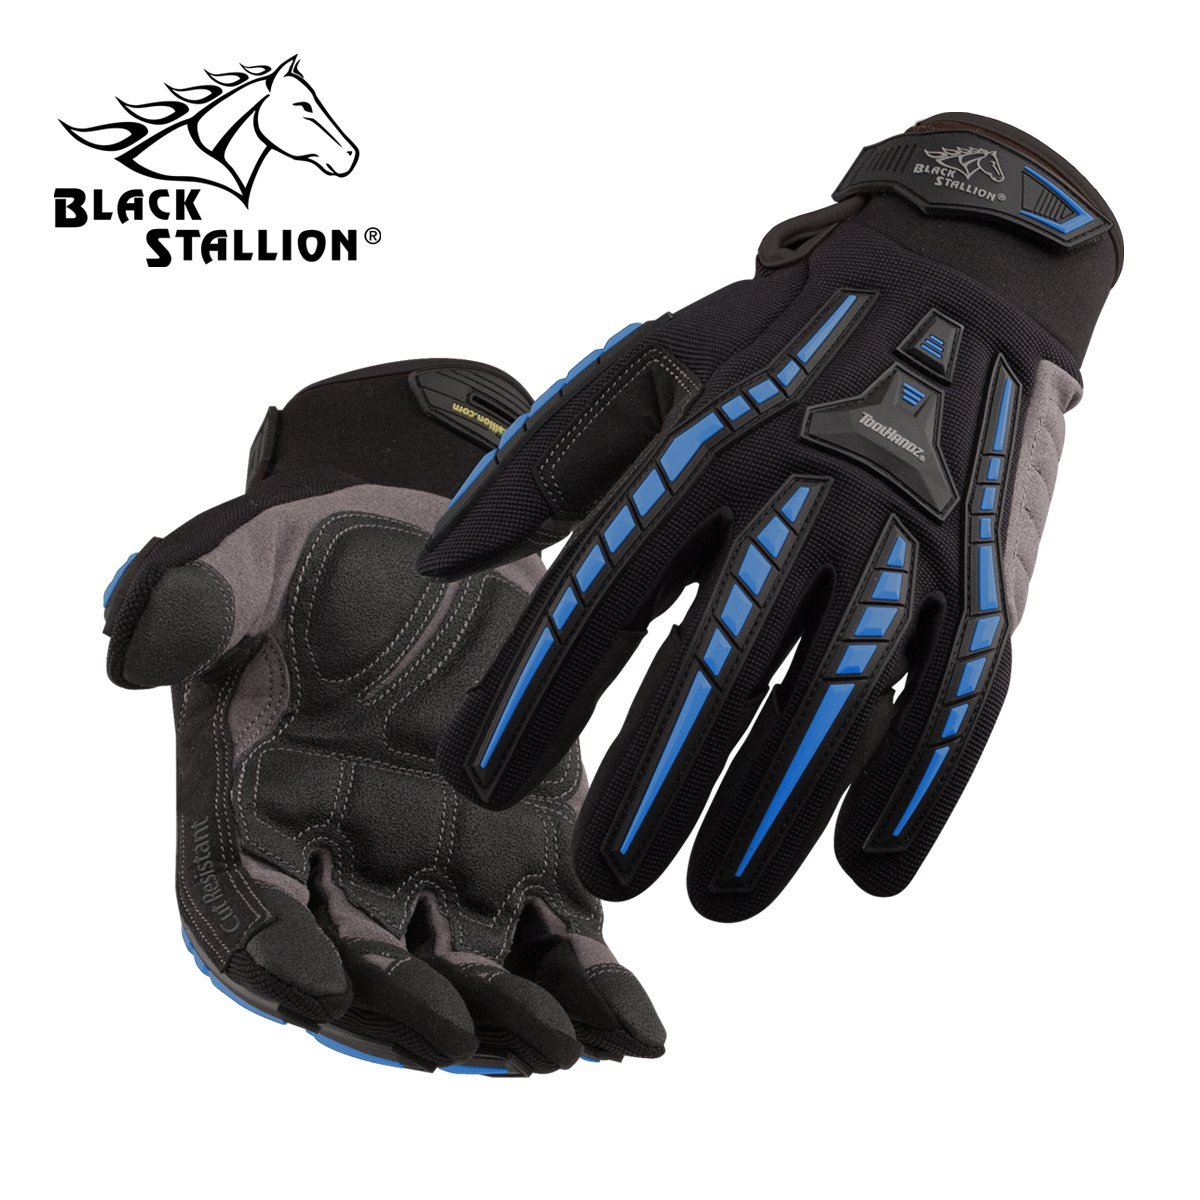 REVCO BLACK STALLION - GX102 TOOLHANDZ SYNTHETIC LEATHER CUT RESISTANT MECHANIC'S GLOVES - SIZE: XLARGE - CASE OF: 120 PAIR